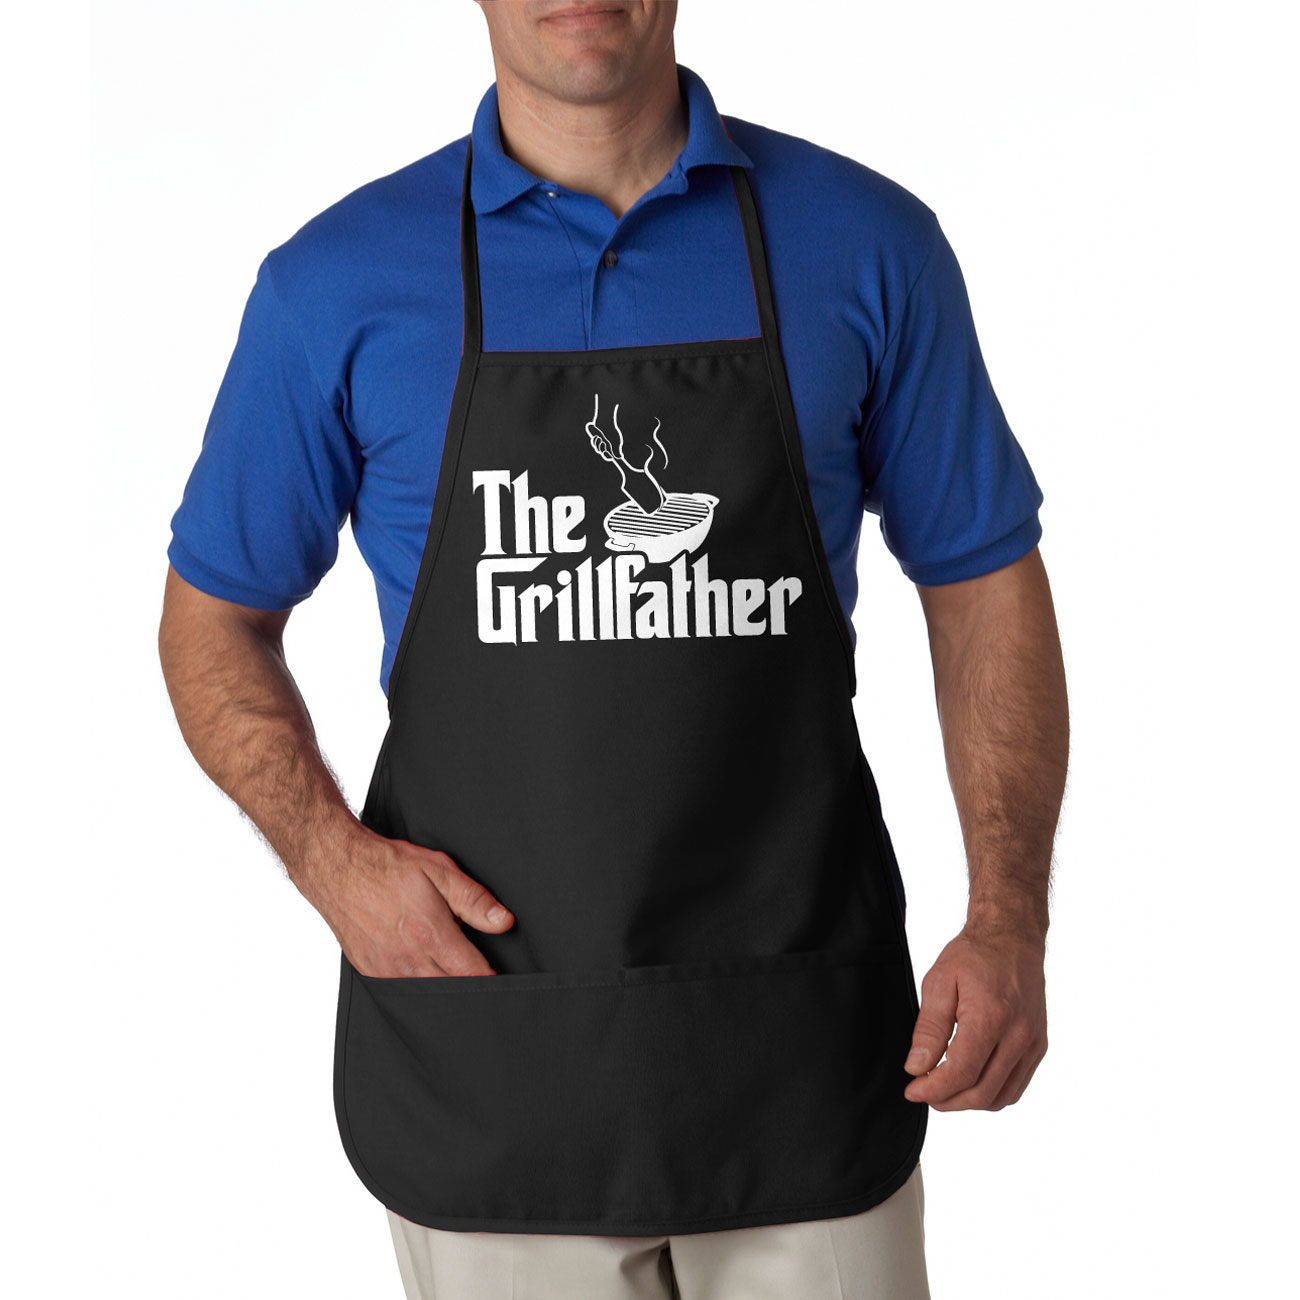 The Grillfather Cookout Apron - One Size Fits All 552573b54f3d6fb63b8b6153